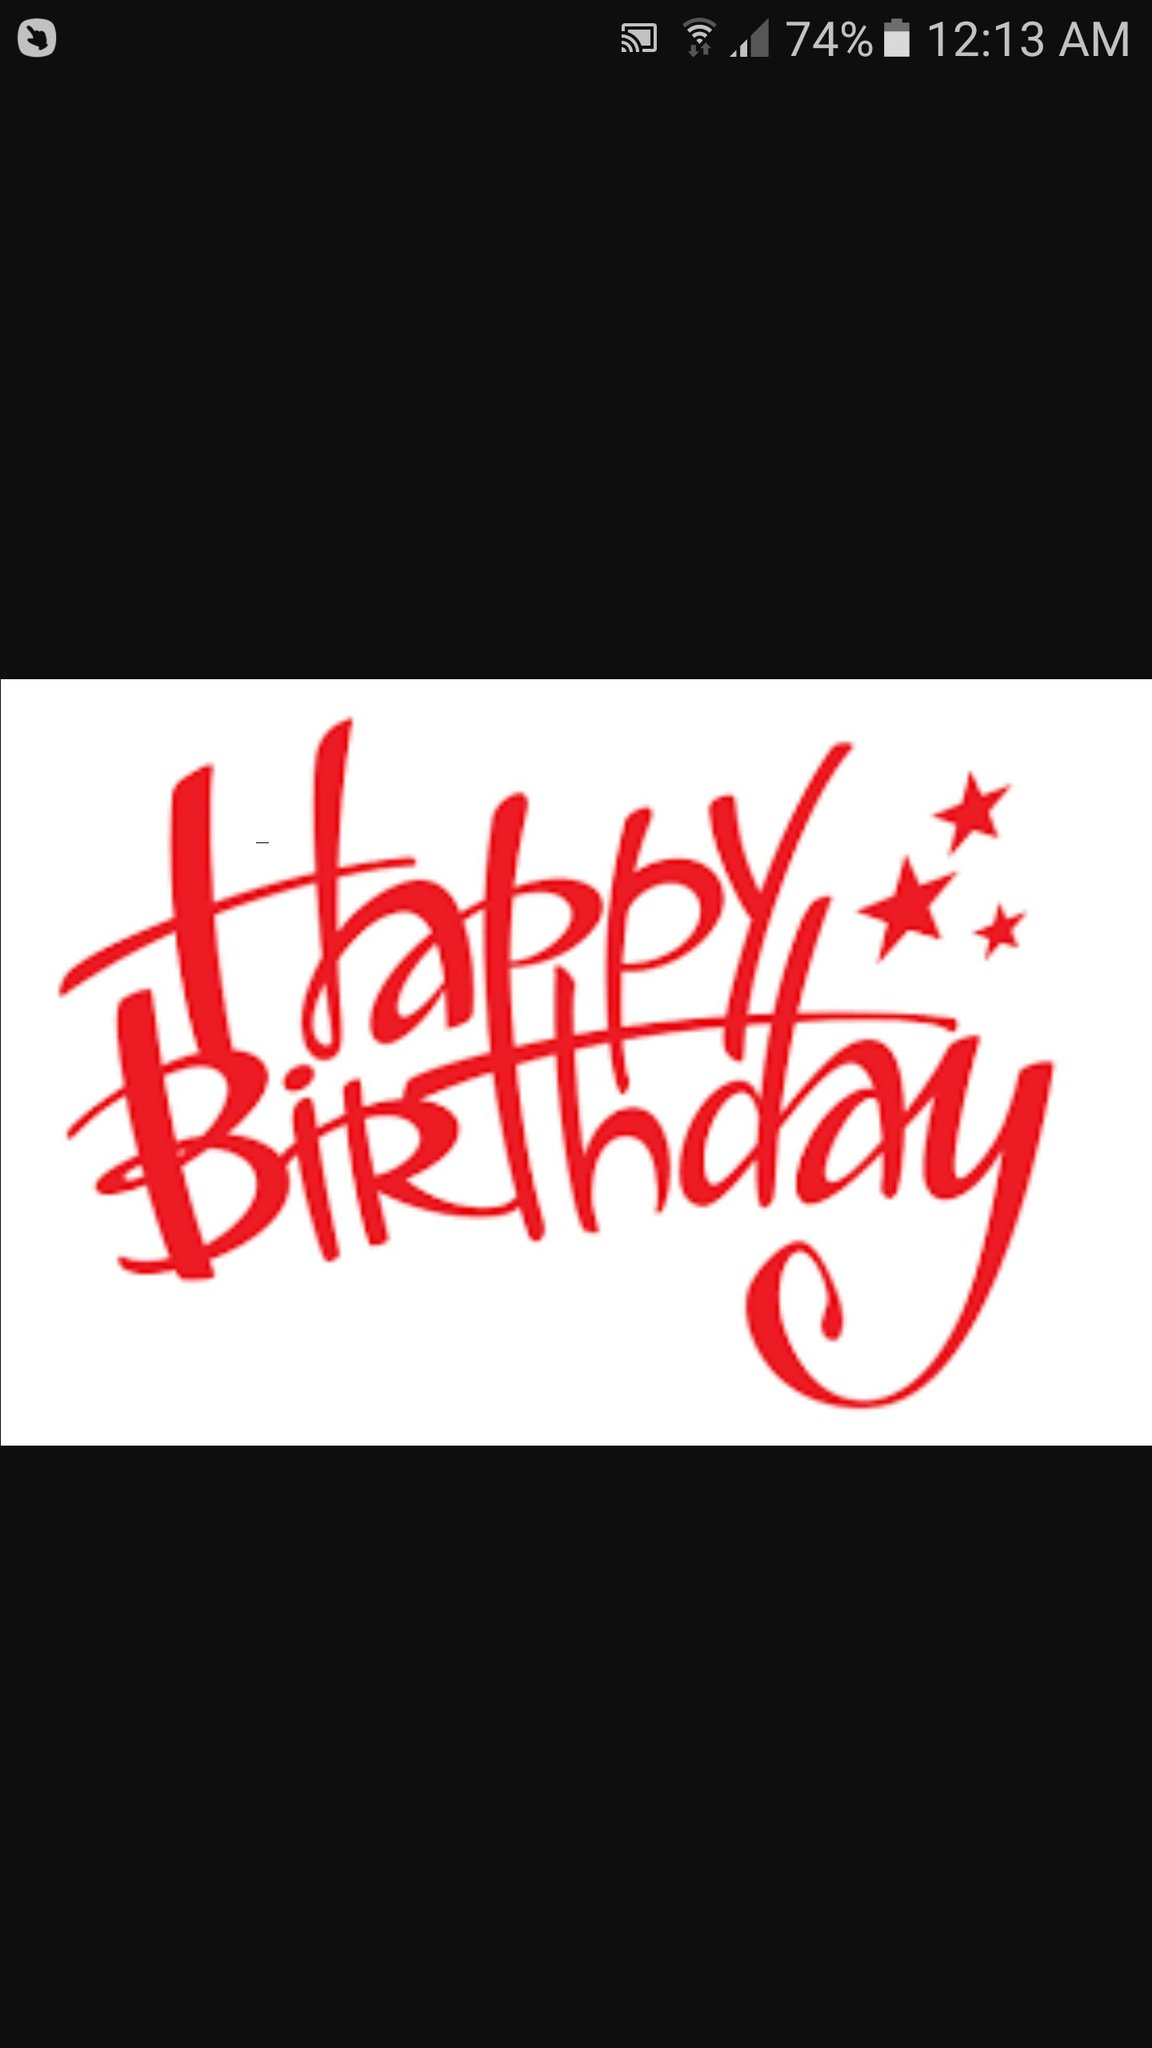 just wanted to wish my favourite paranormal investigator a Happy Birthday hope u have a great day